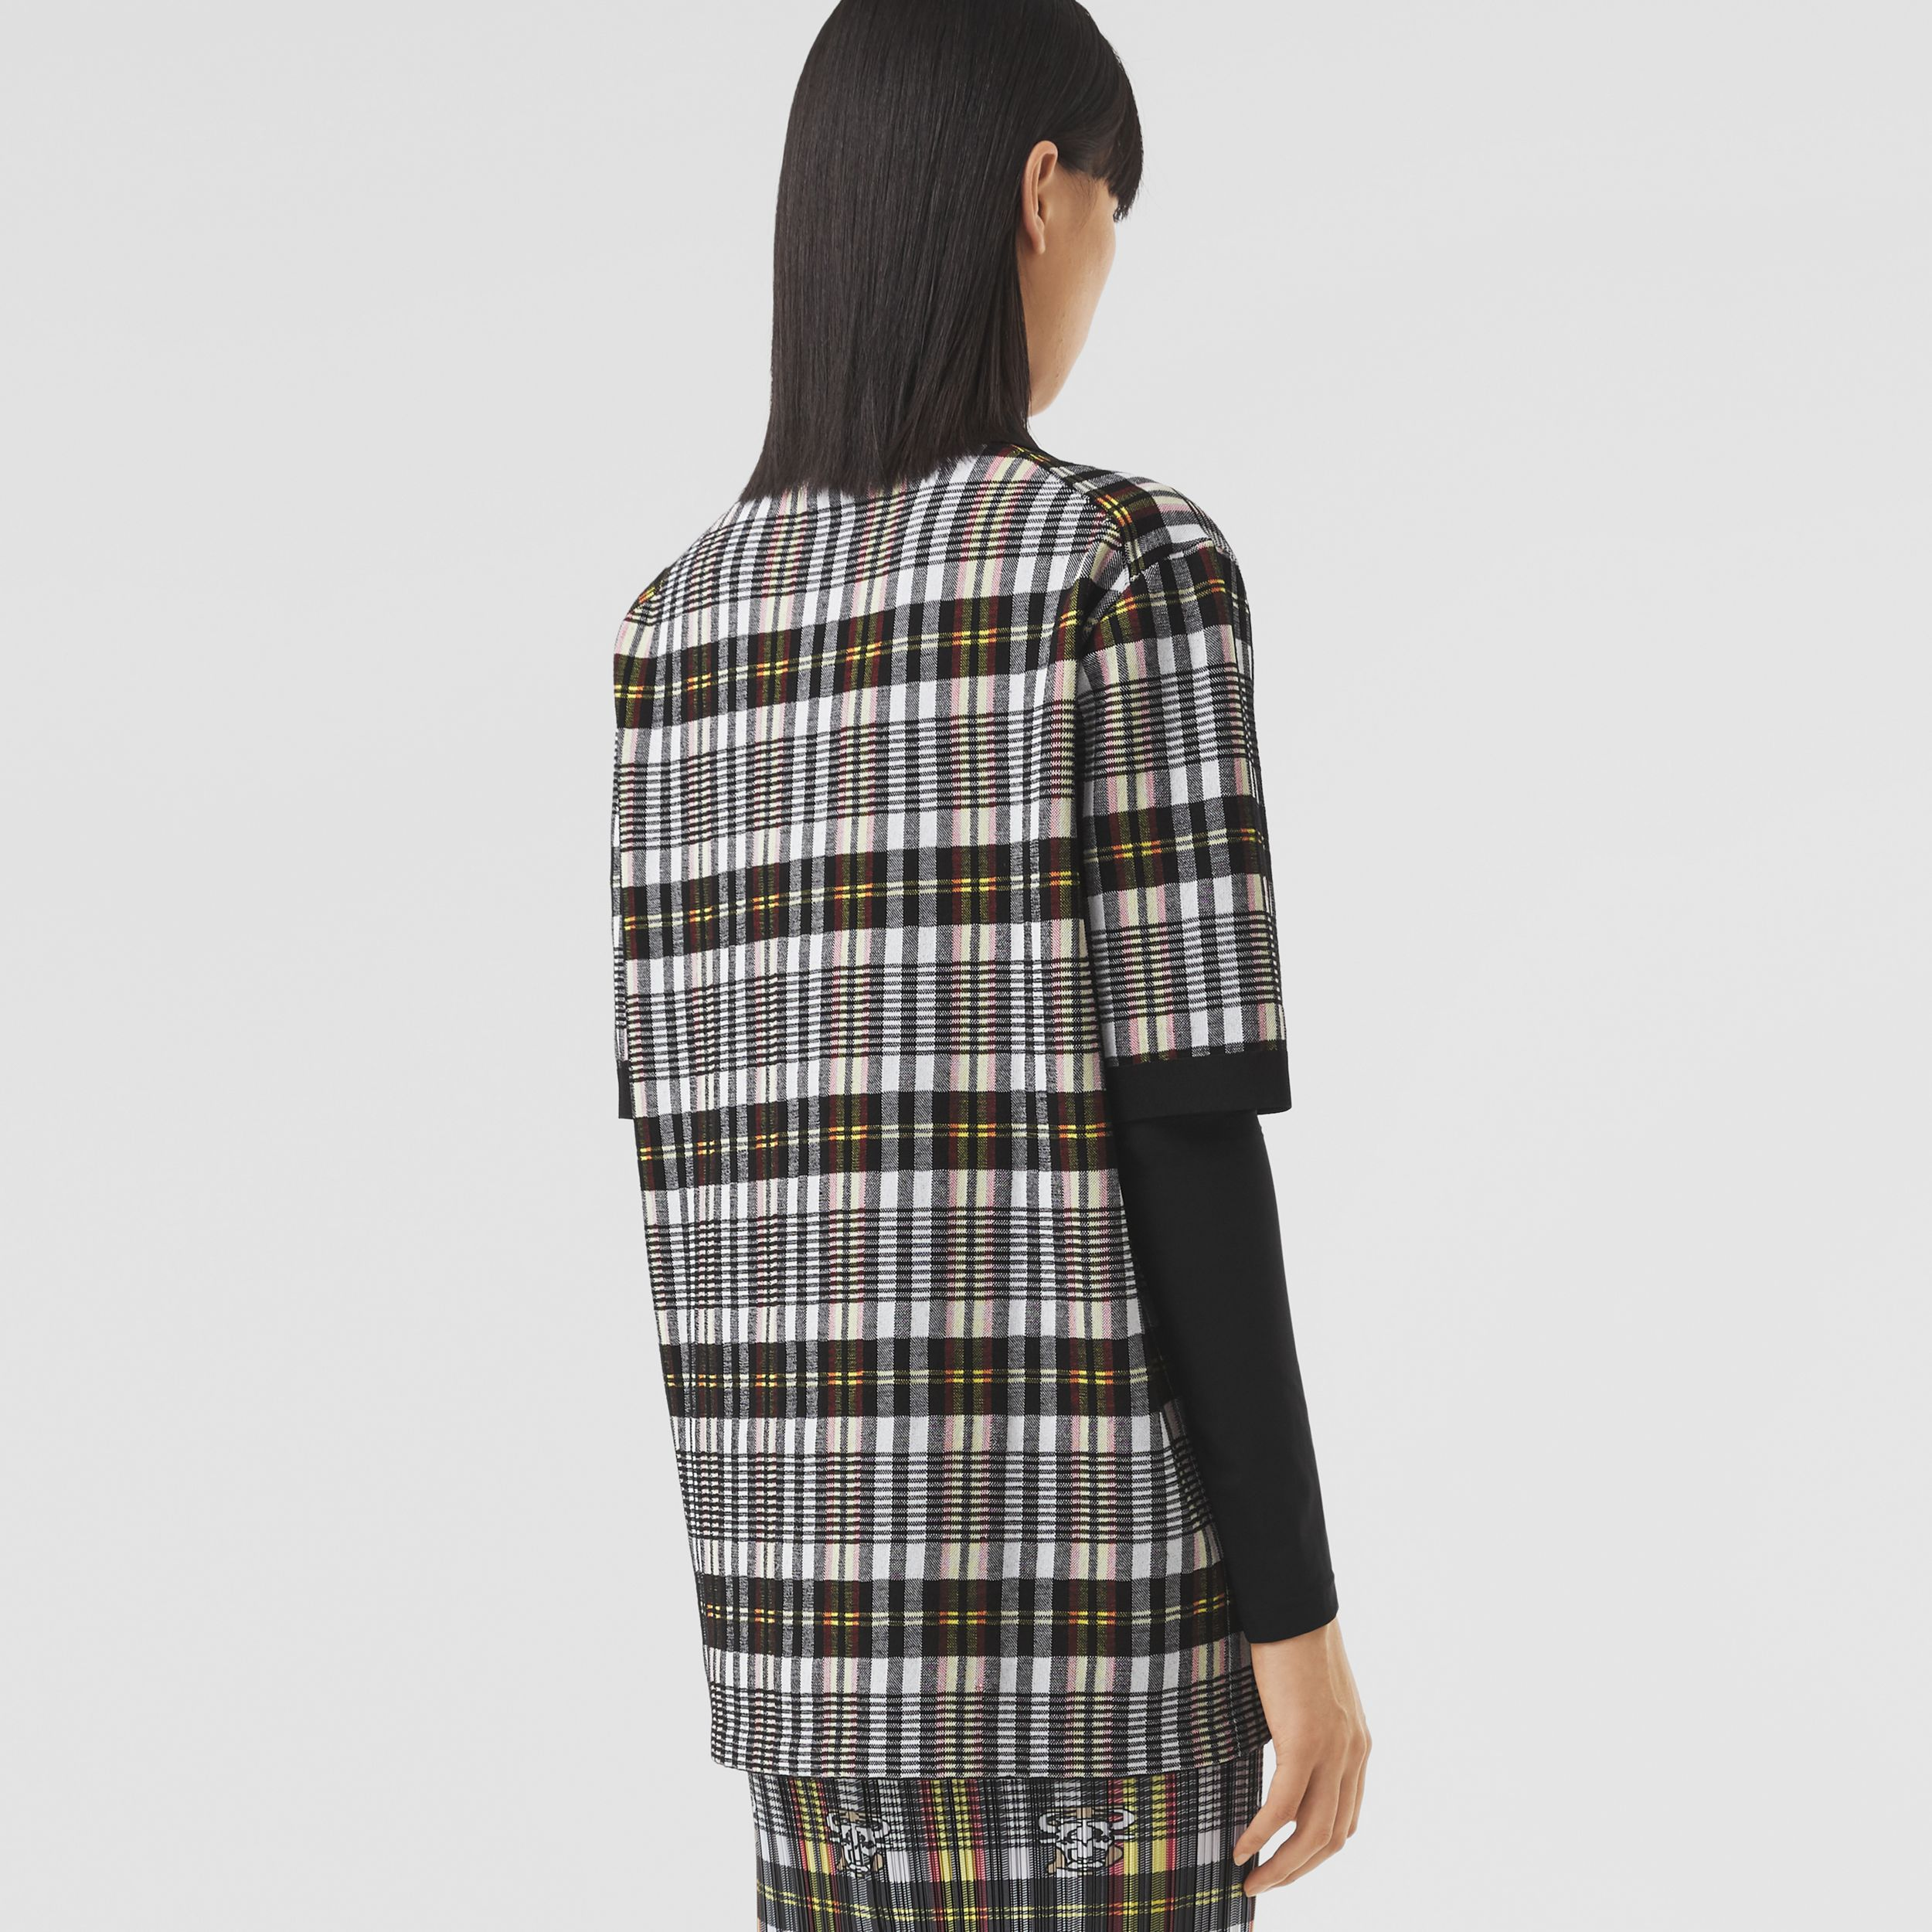 Monogram Motif Check Oversized Polo Shirt in Marigold Yellow - Women | Burberry - 3